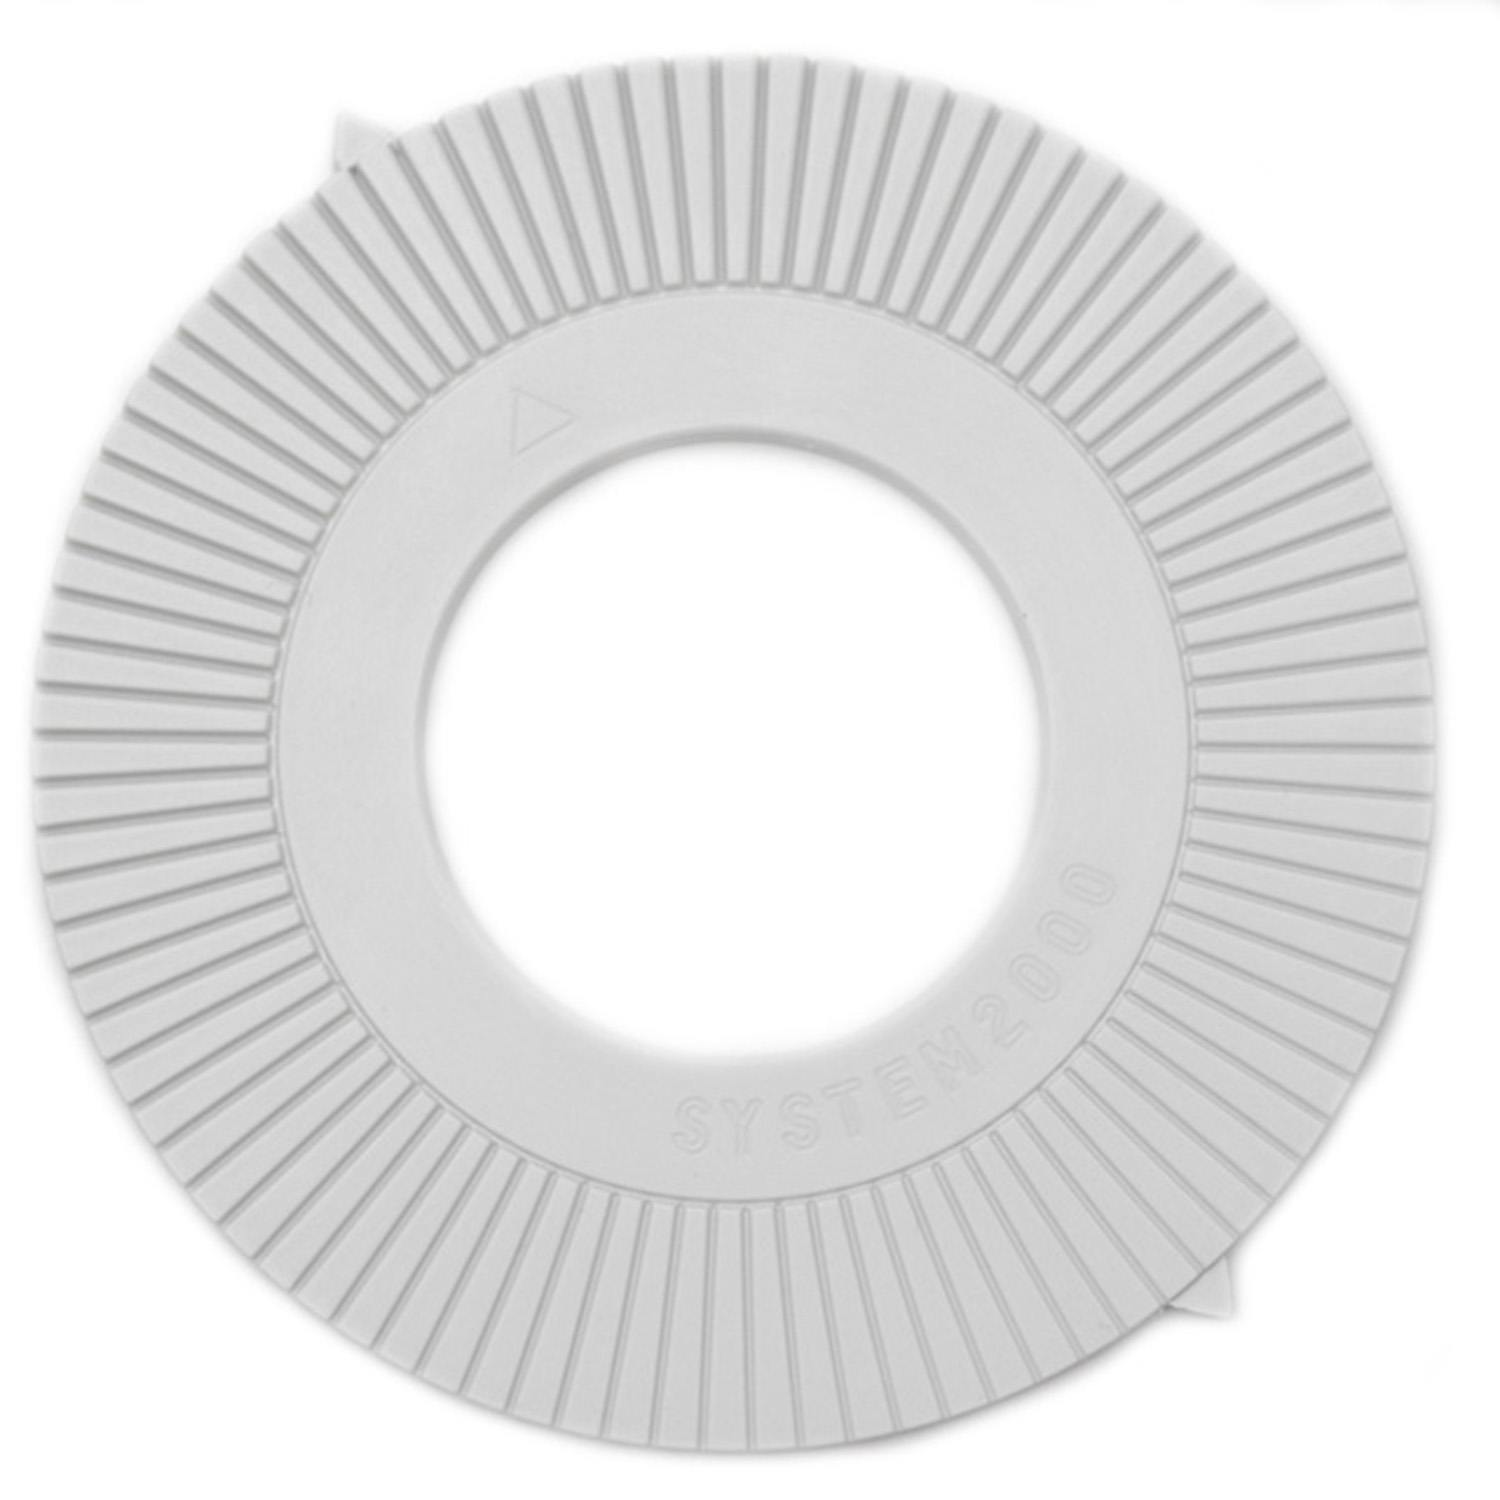 ACDELCO PROFESSIONAL - Alignment Shim - DCC 45K13135